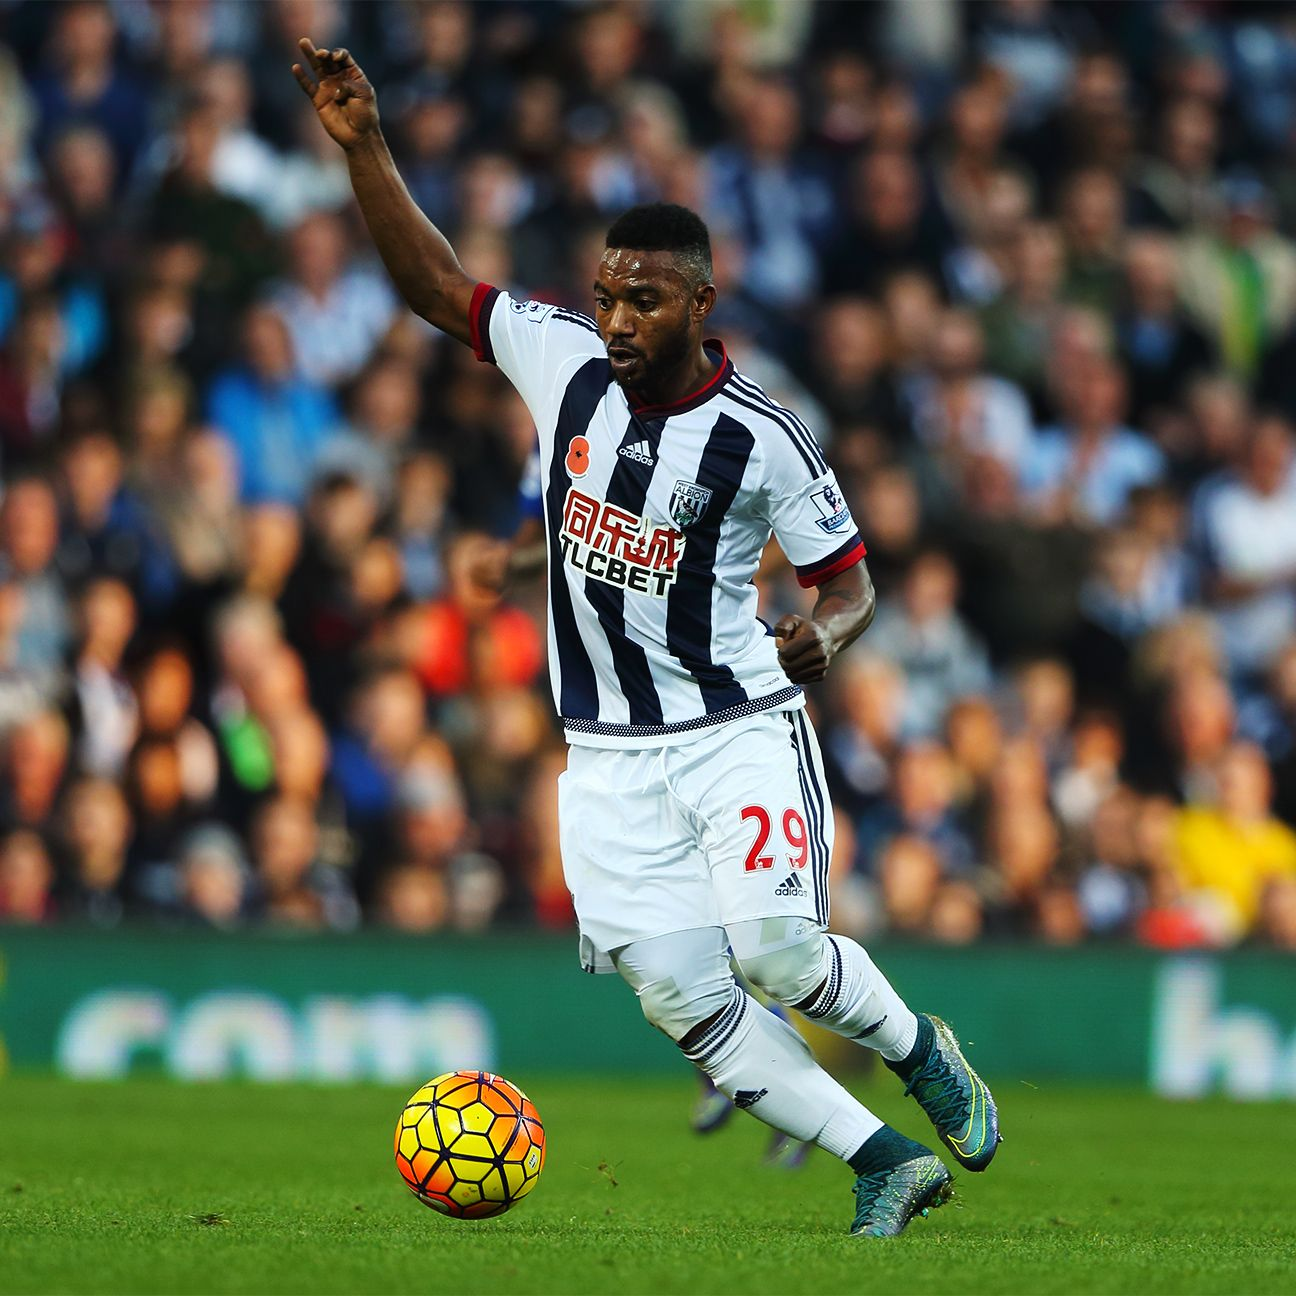 Stephane Sessegnon and West Brom once again struggled in front of the home fans at The Hawthorns on Saturday.